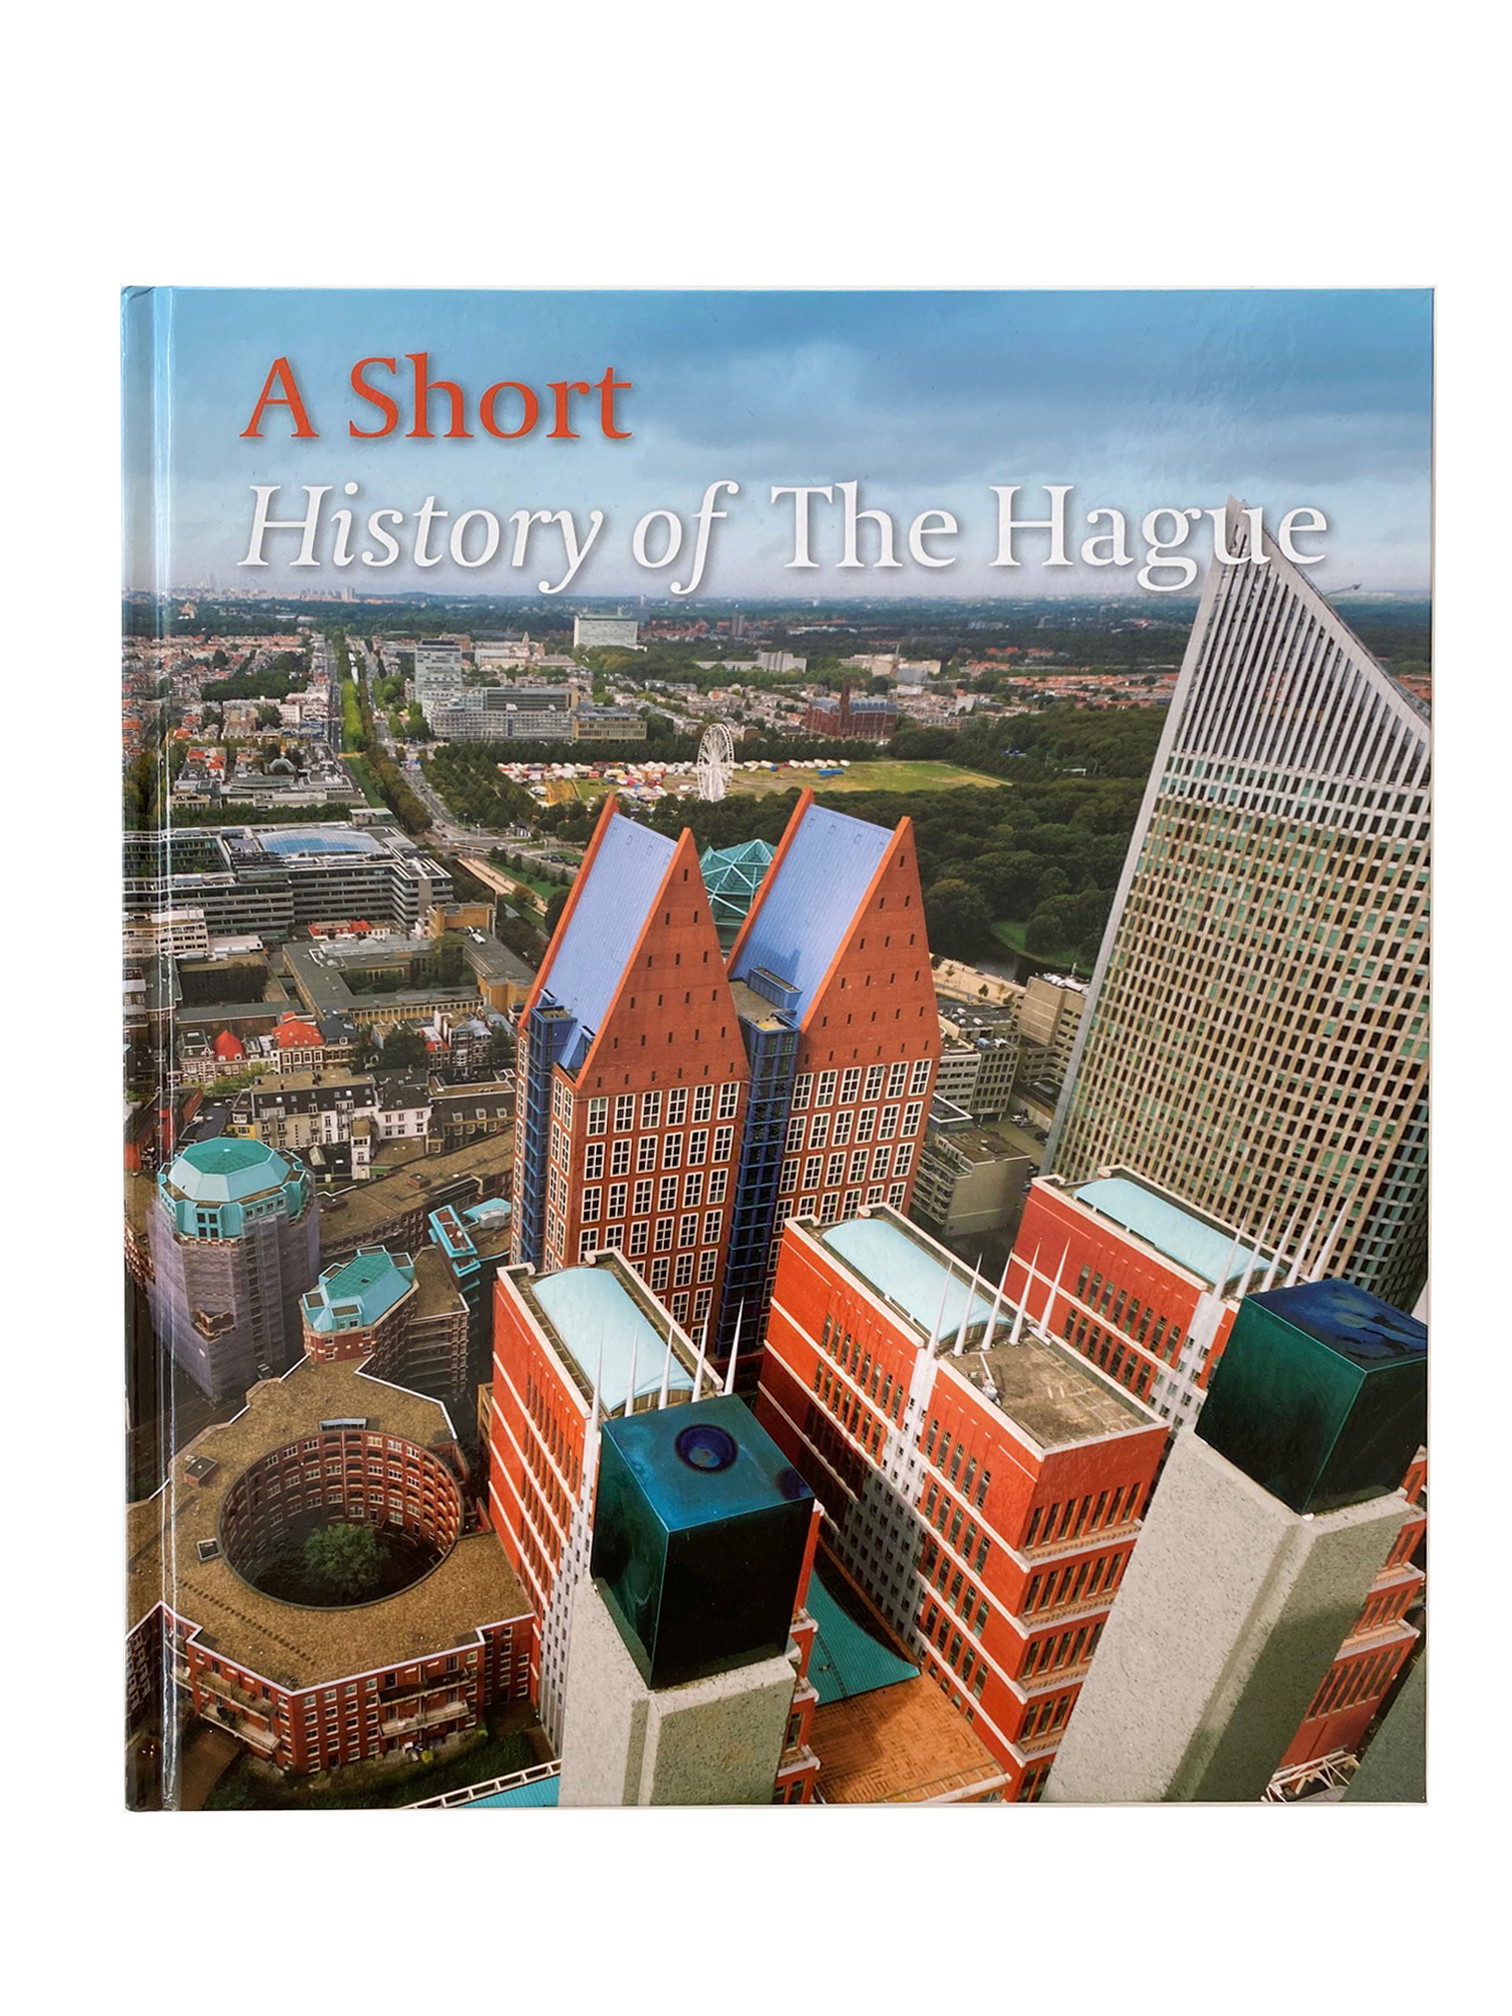 Short History of The Hague